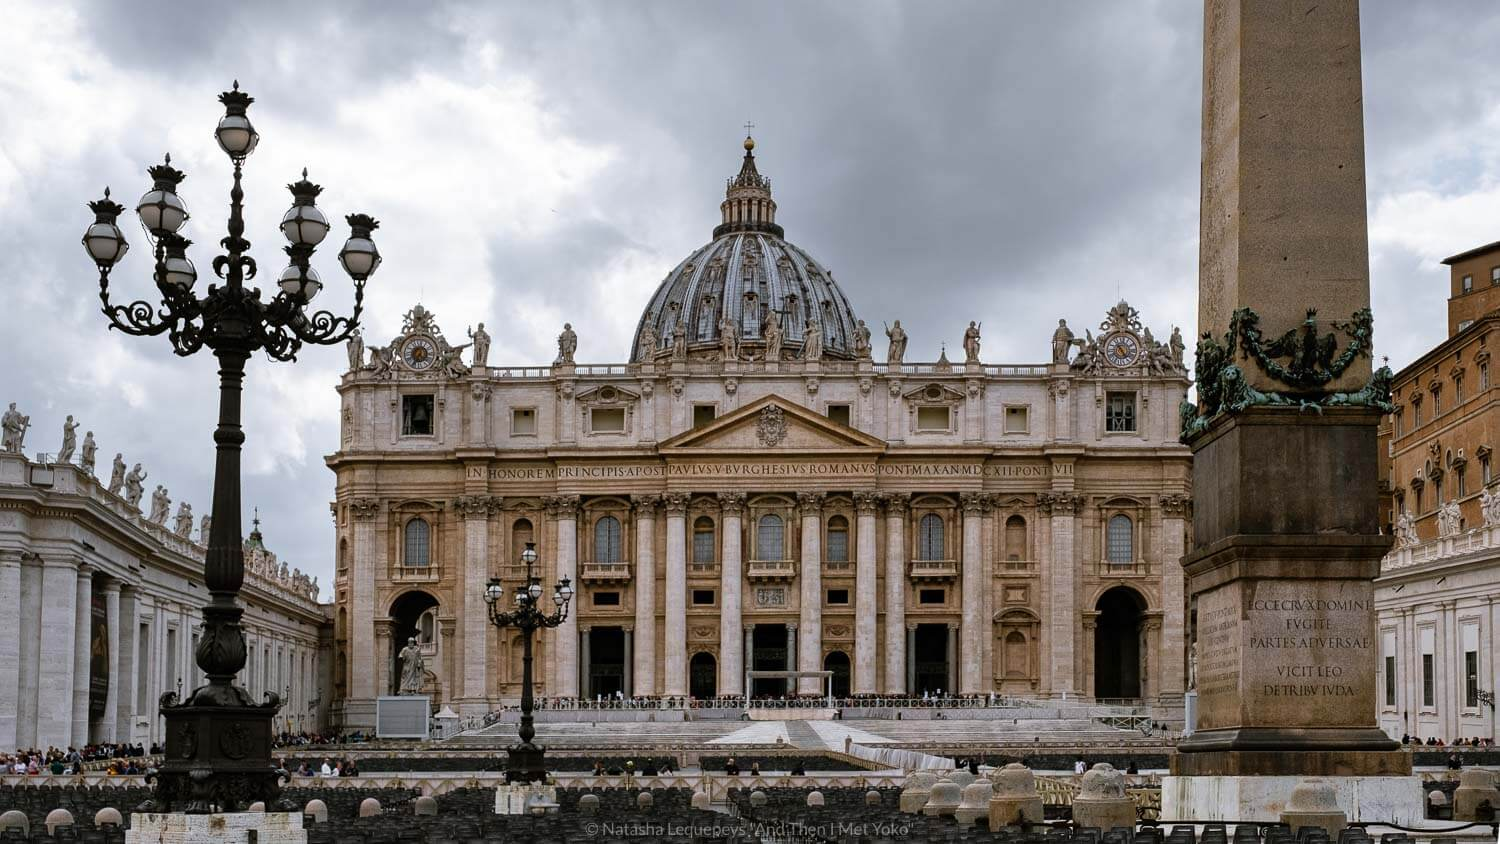 """Saint Peter's Basilica, Vatican. Travel photography and guide by © Natasha Lequepeys for """"And Then I Met Yoko"""". #rome #italy #travelblog #travelphotography"""